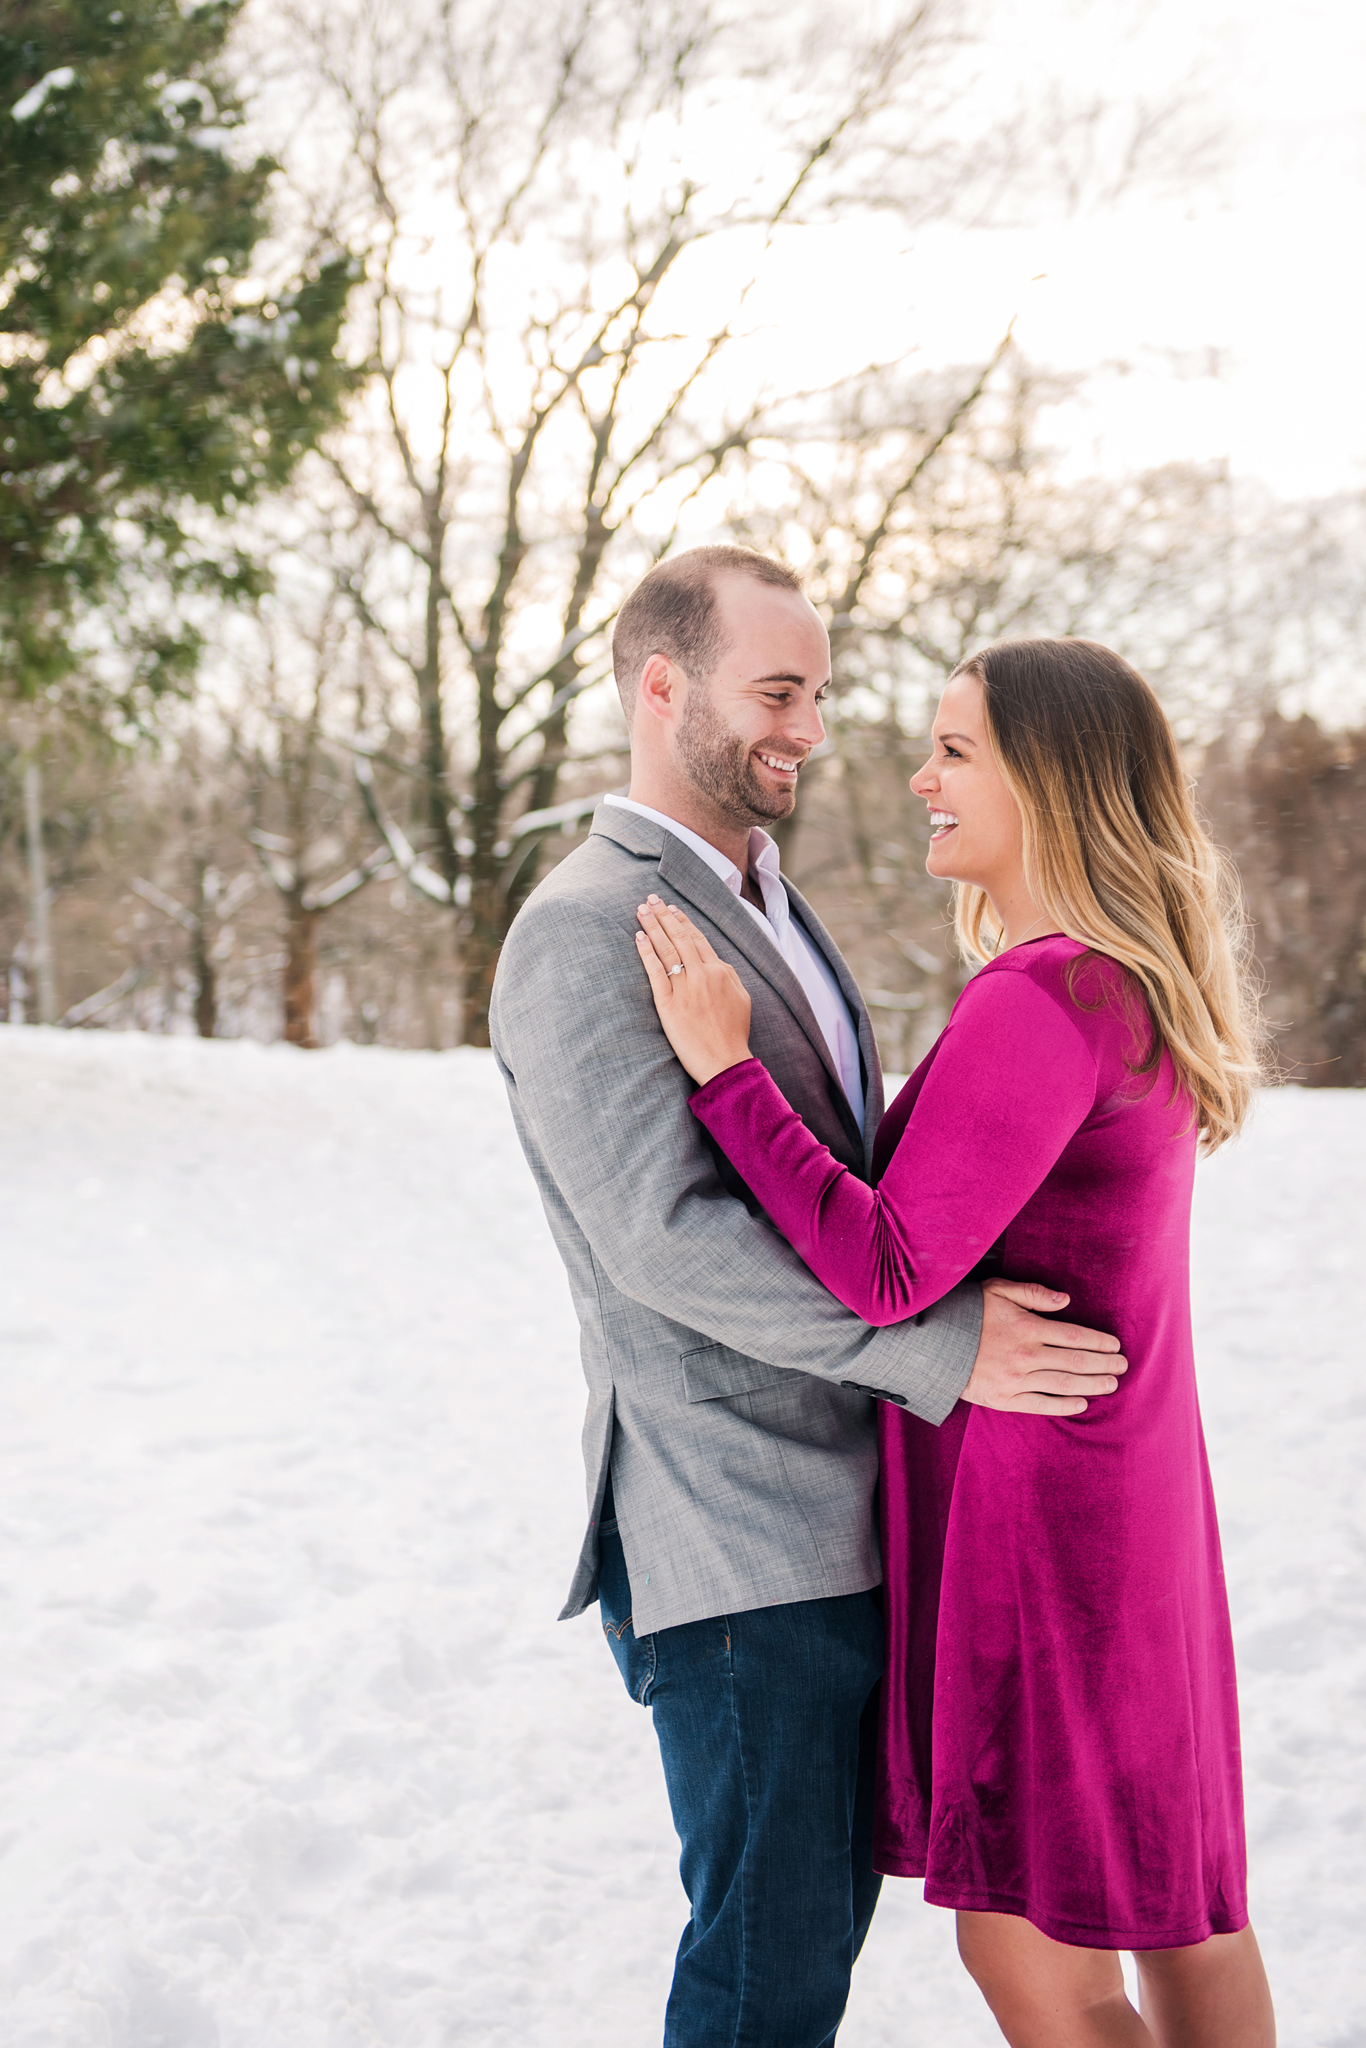 Webster_Park_Engagement_Session_Rochester_NY_photographer_DSC_6328.jpg